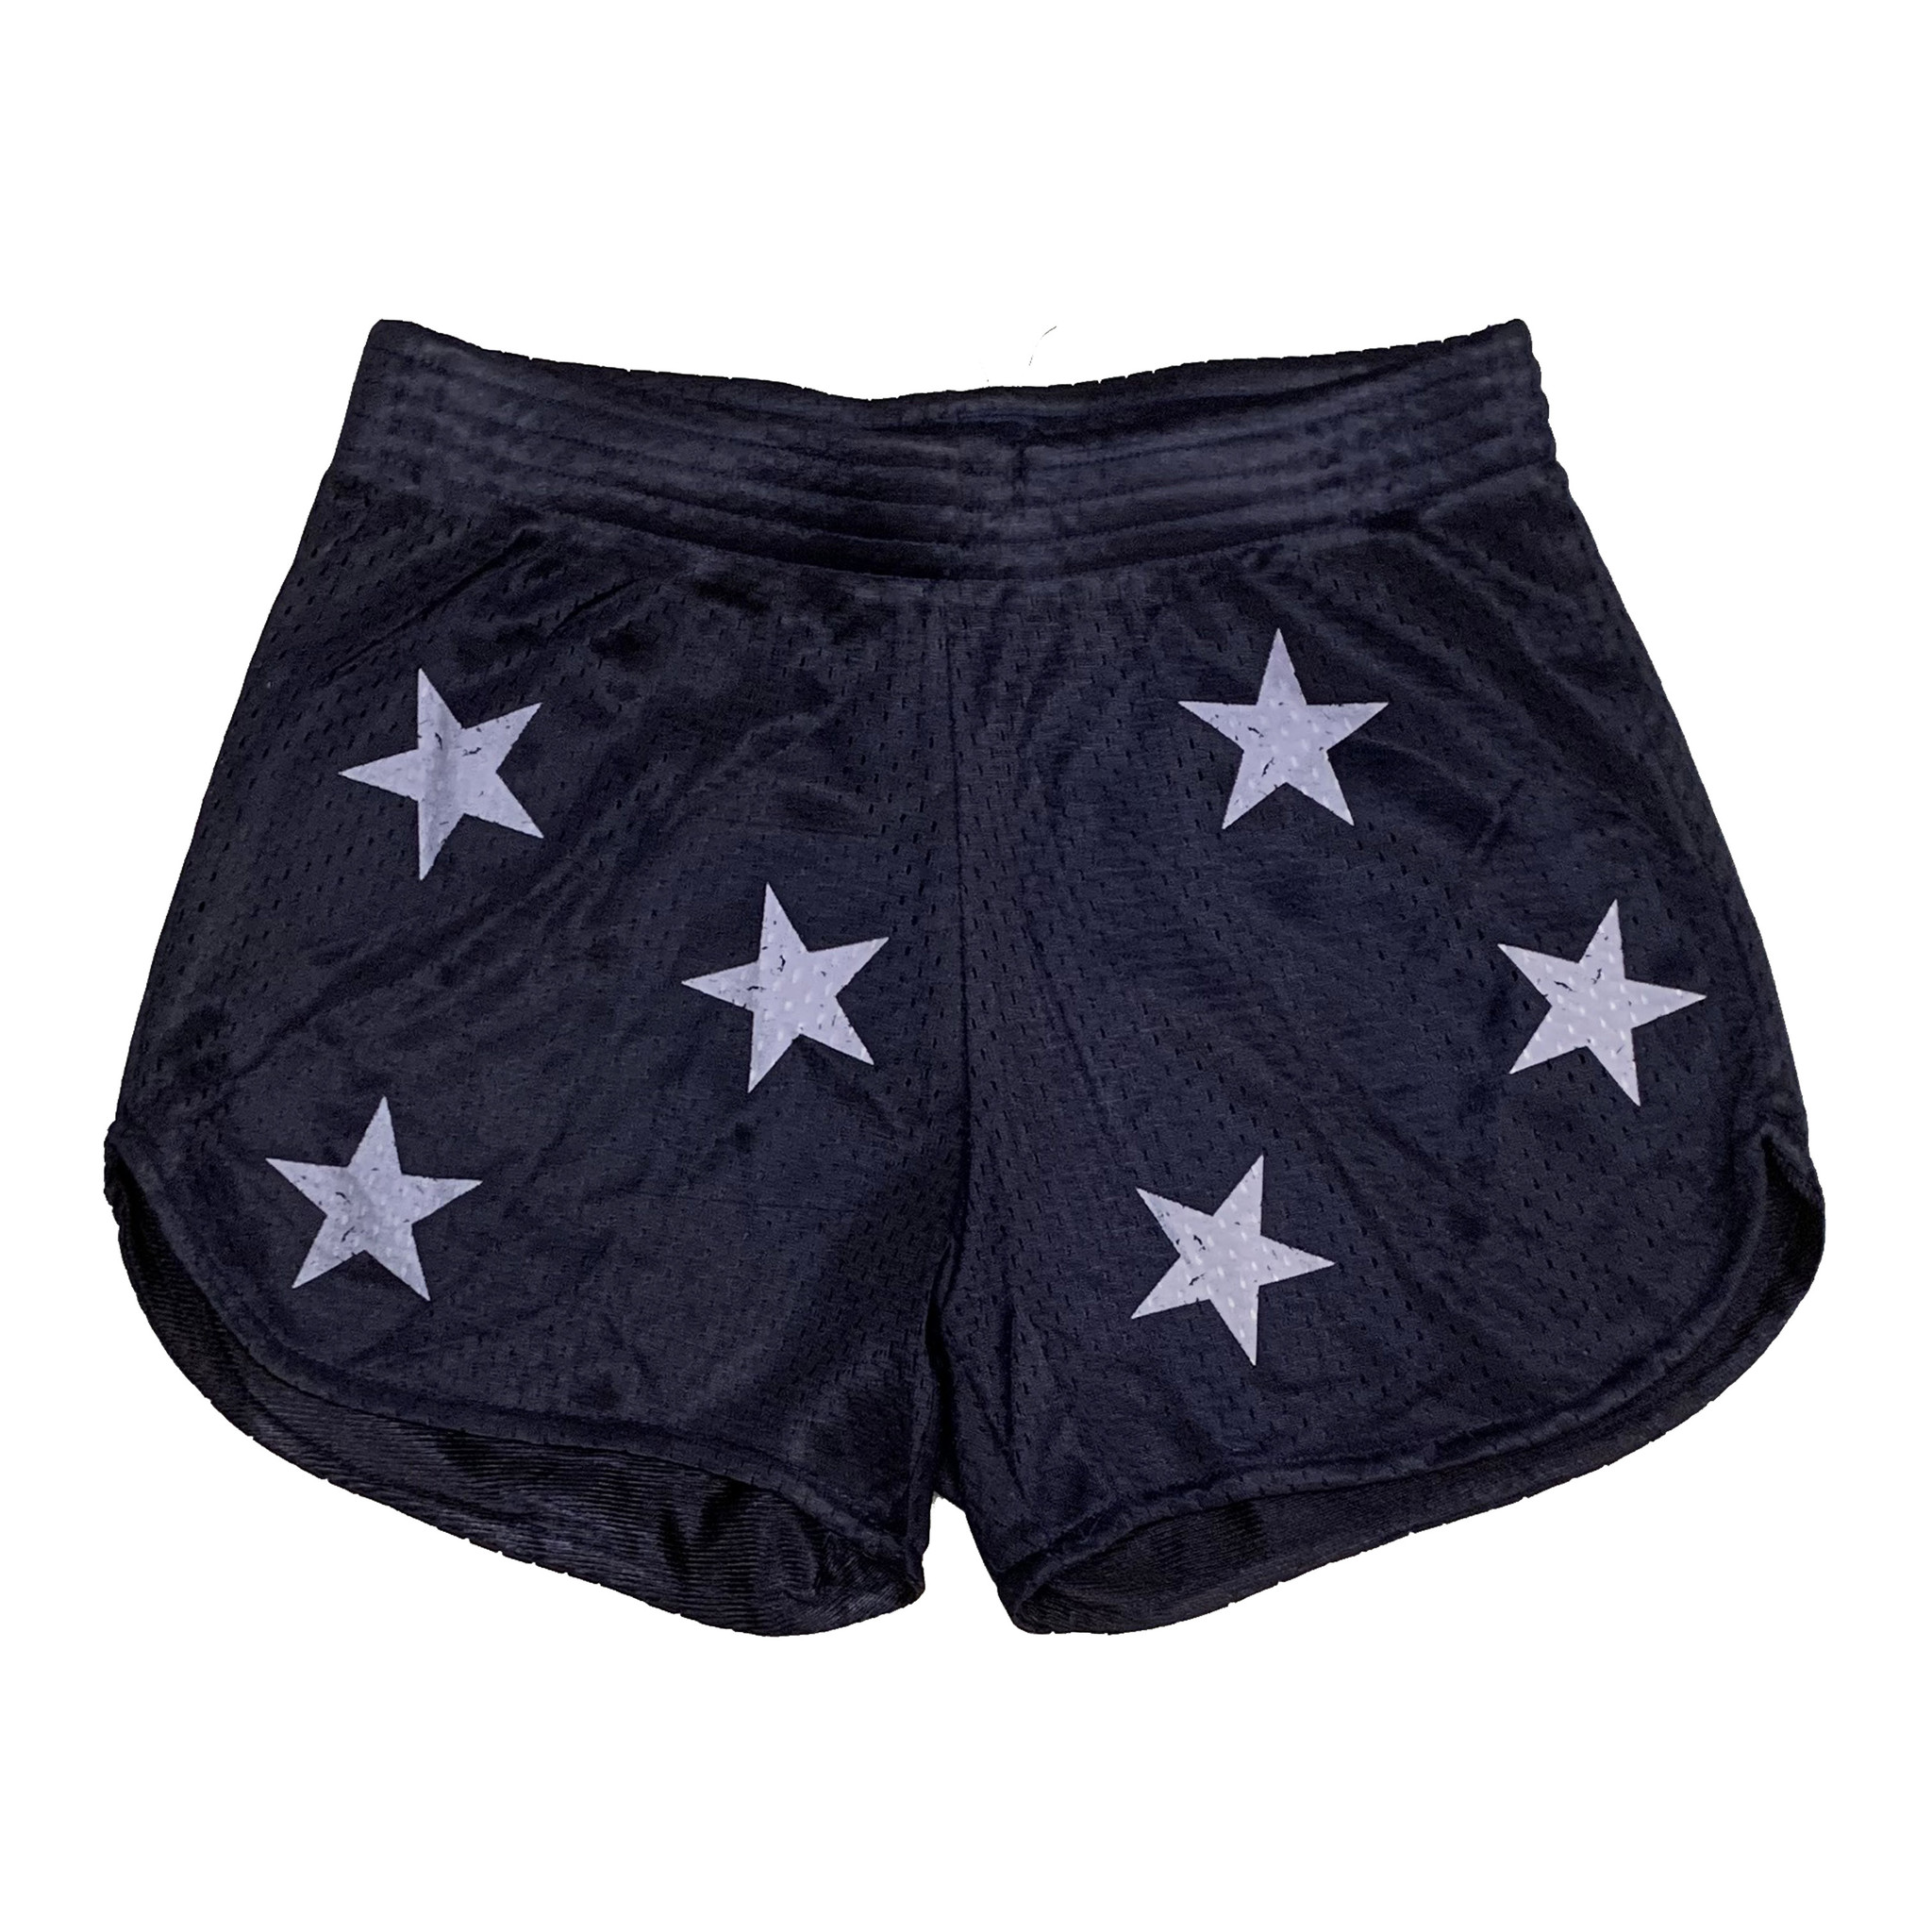 Firehouse Navy Mesh Star Shorts